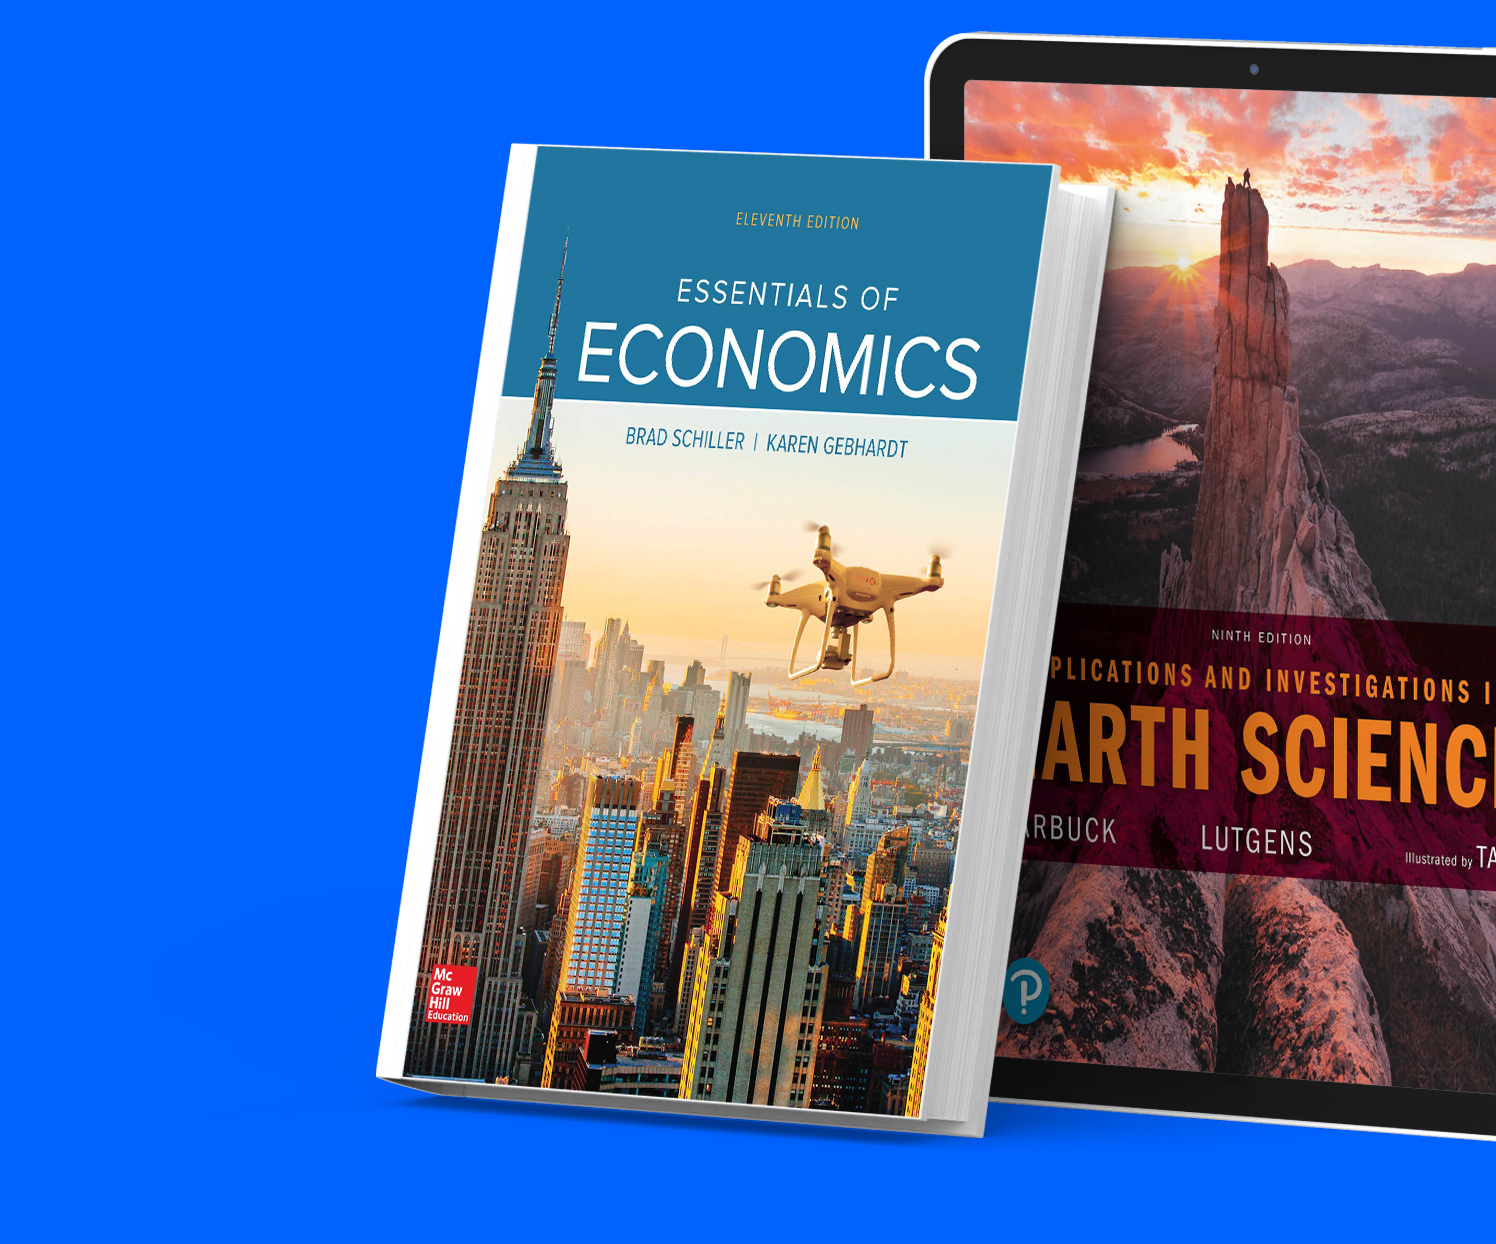 Textbooks available as print or digital versions